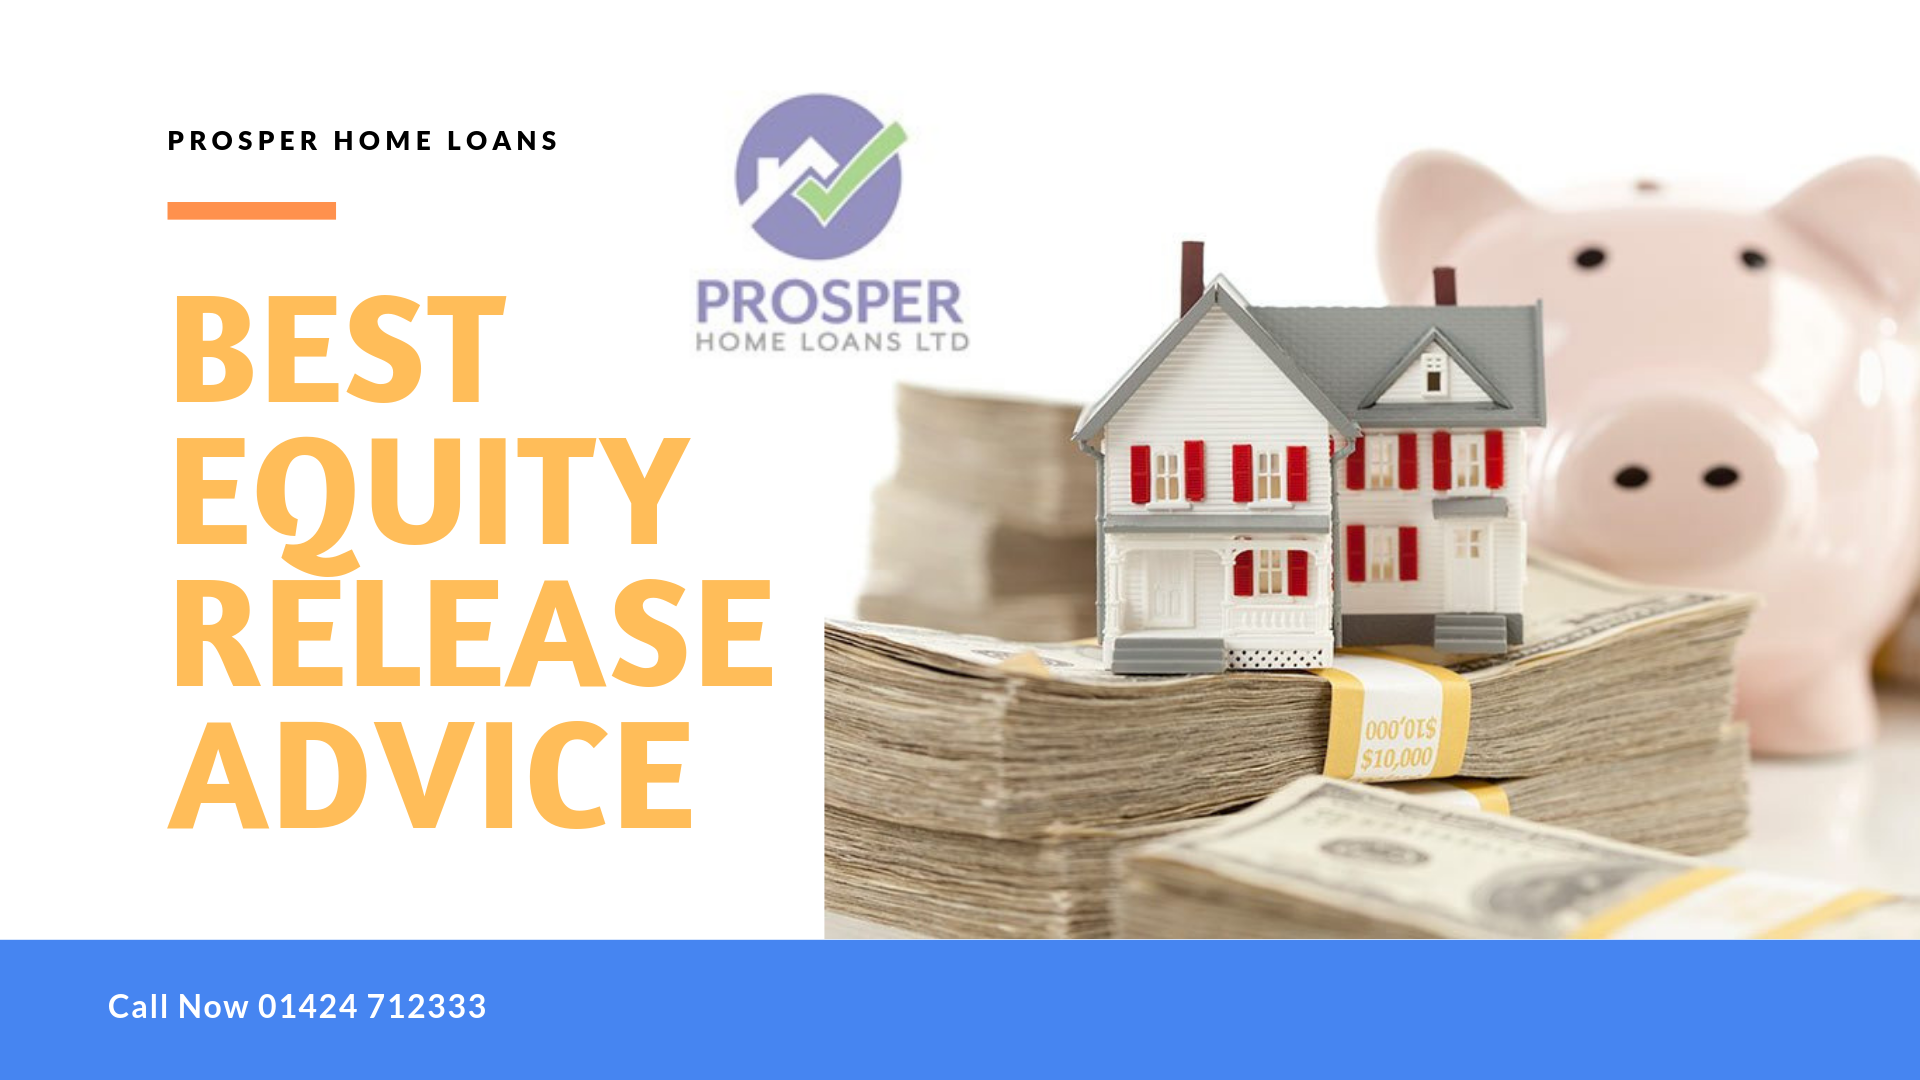 Help You Decide If Equity Release Could Be Right For You And Your